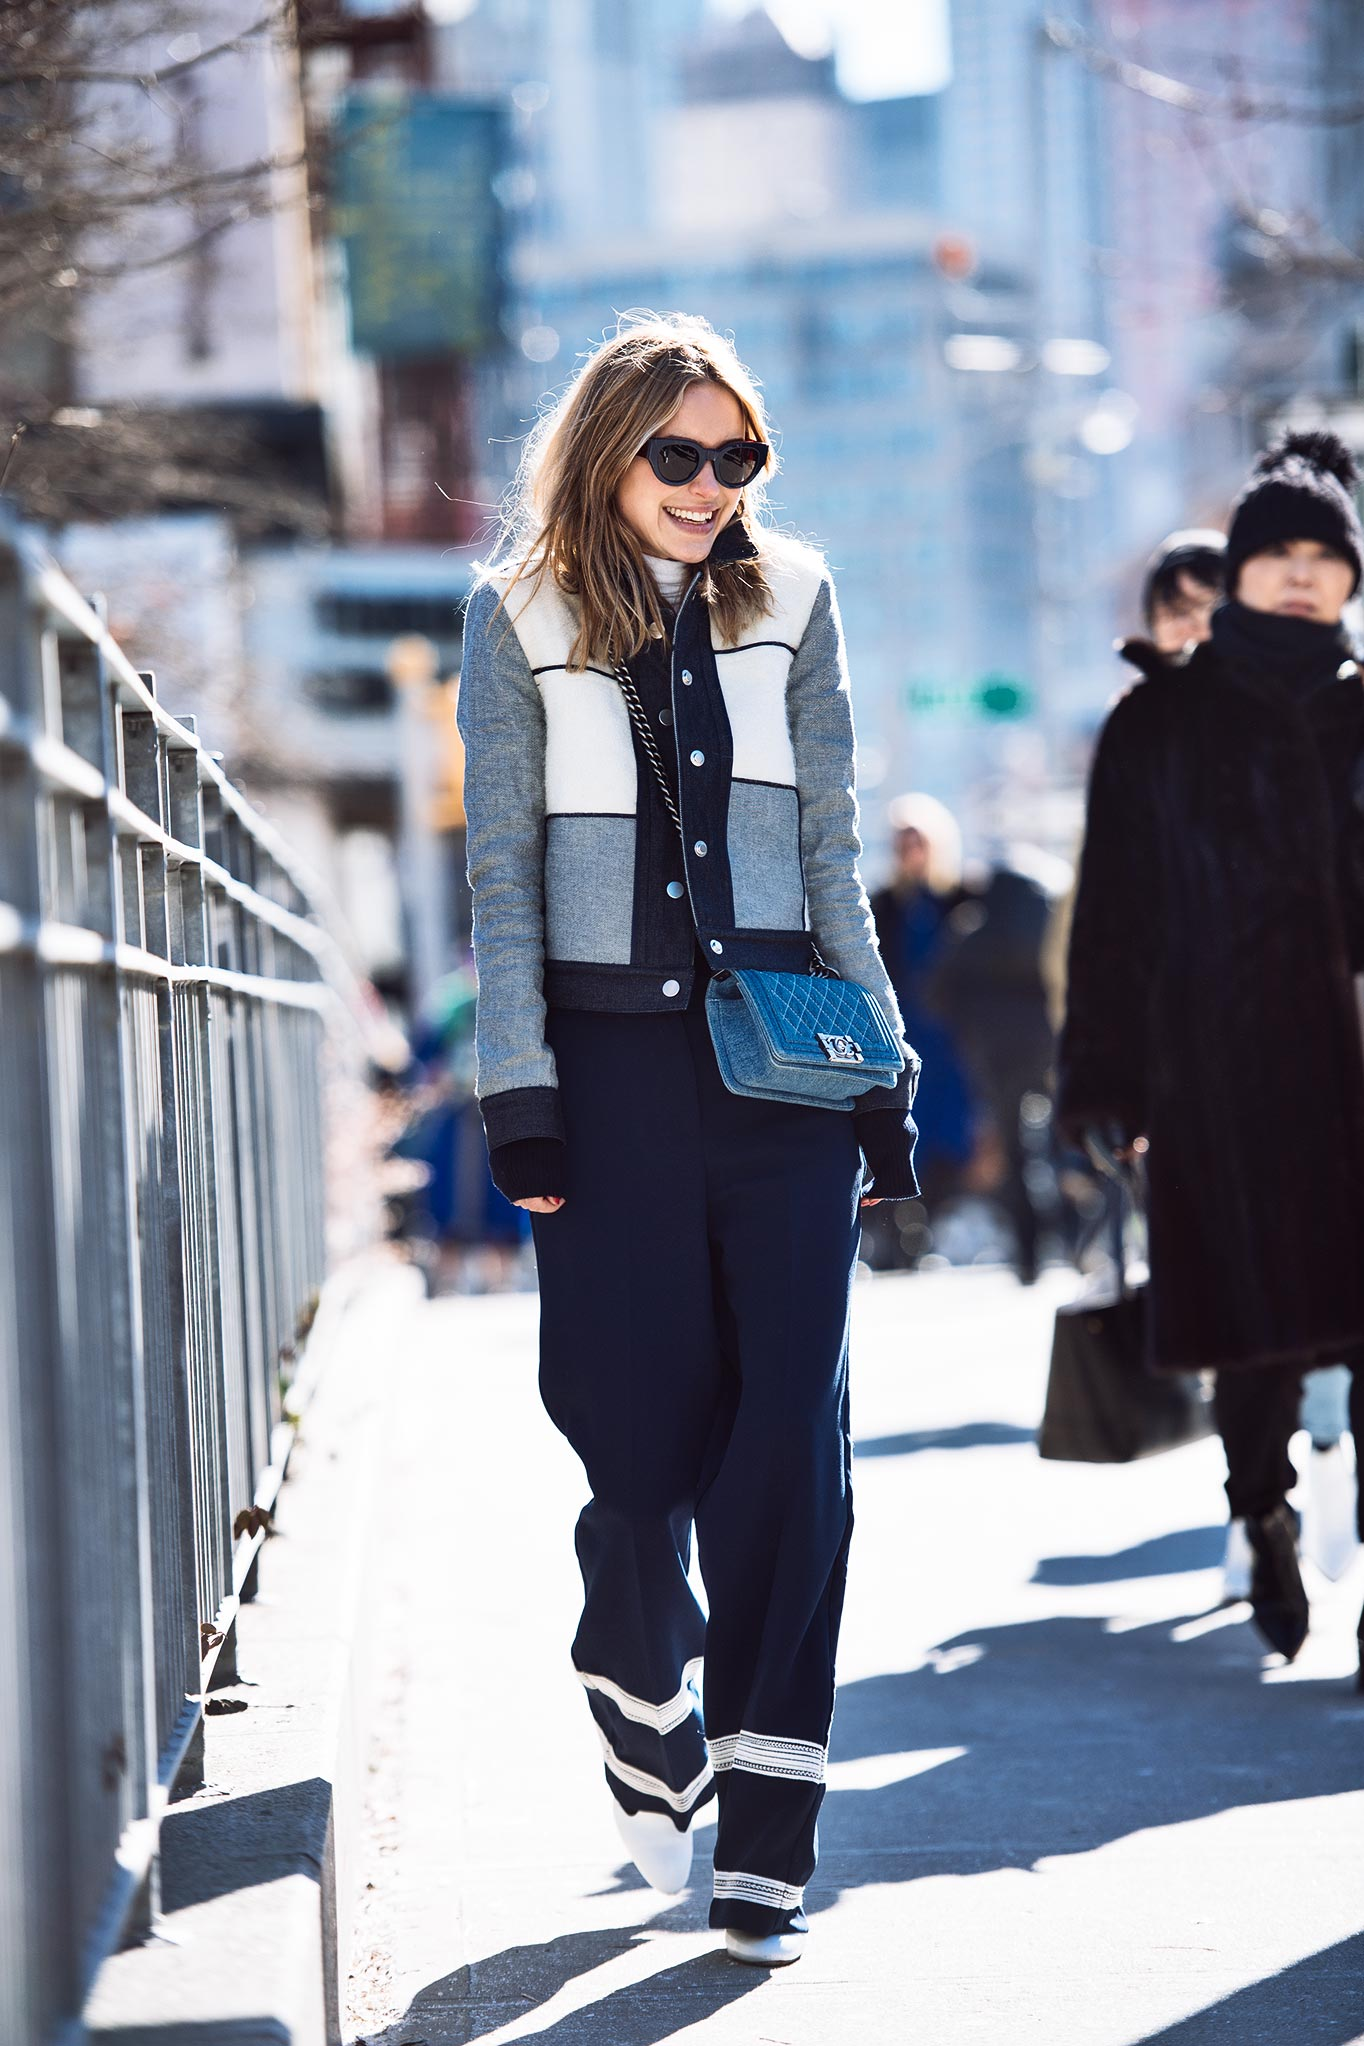 Pernille Teisbaek at New York Fashion Week Fall/Winter 2015